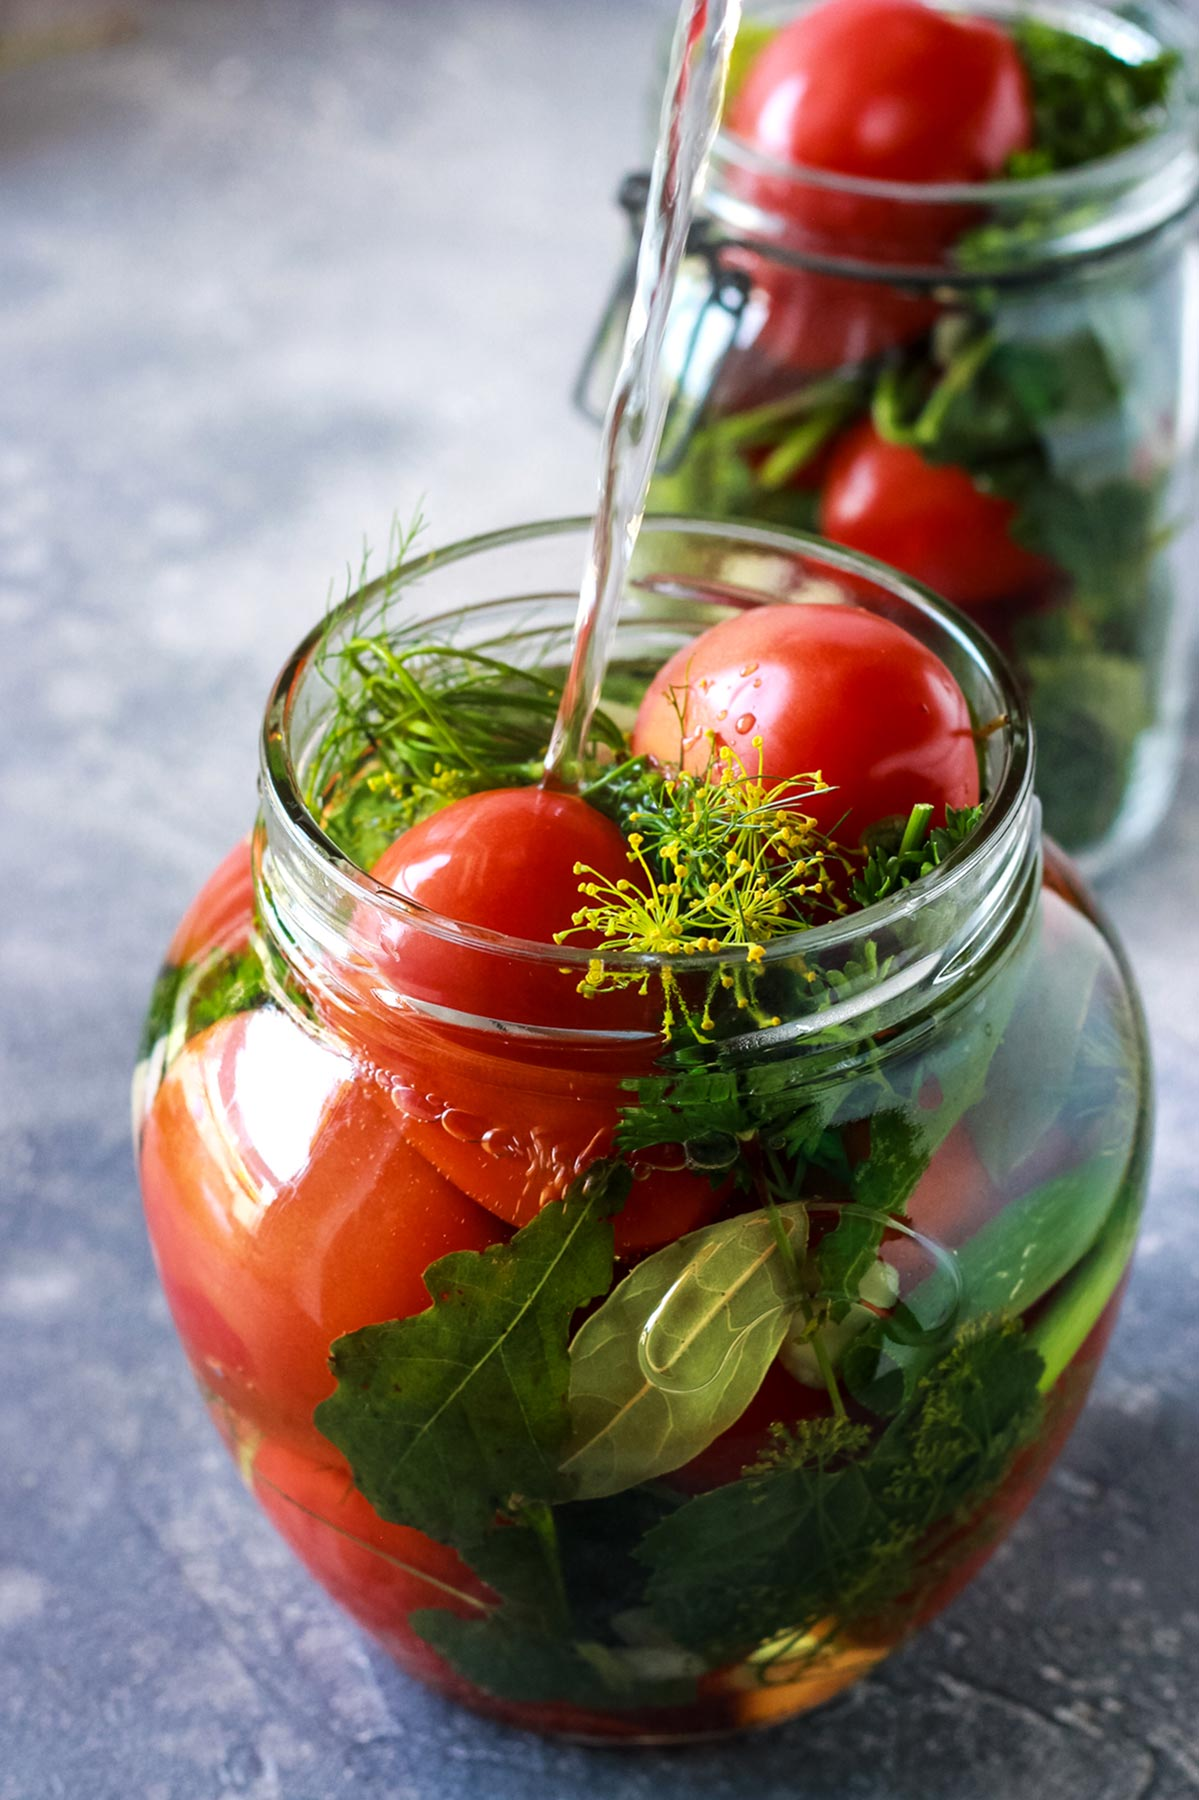 Pouring boiling water into a jar with tomatoes.